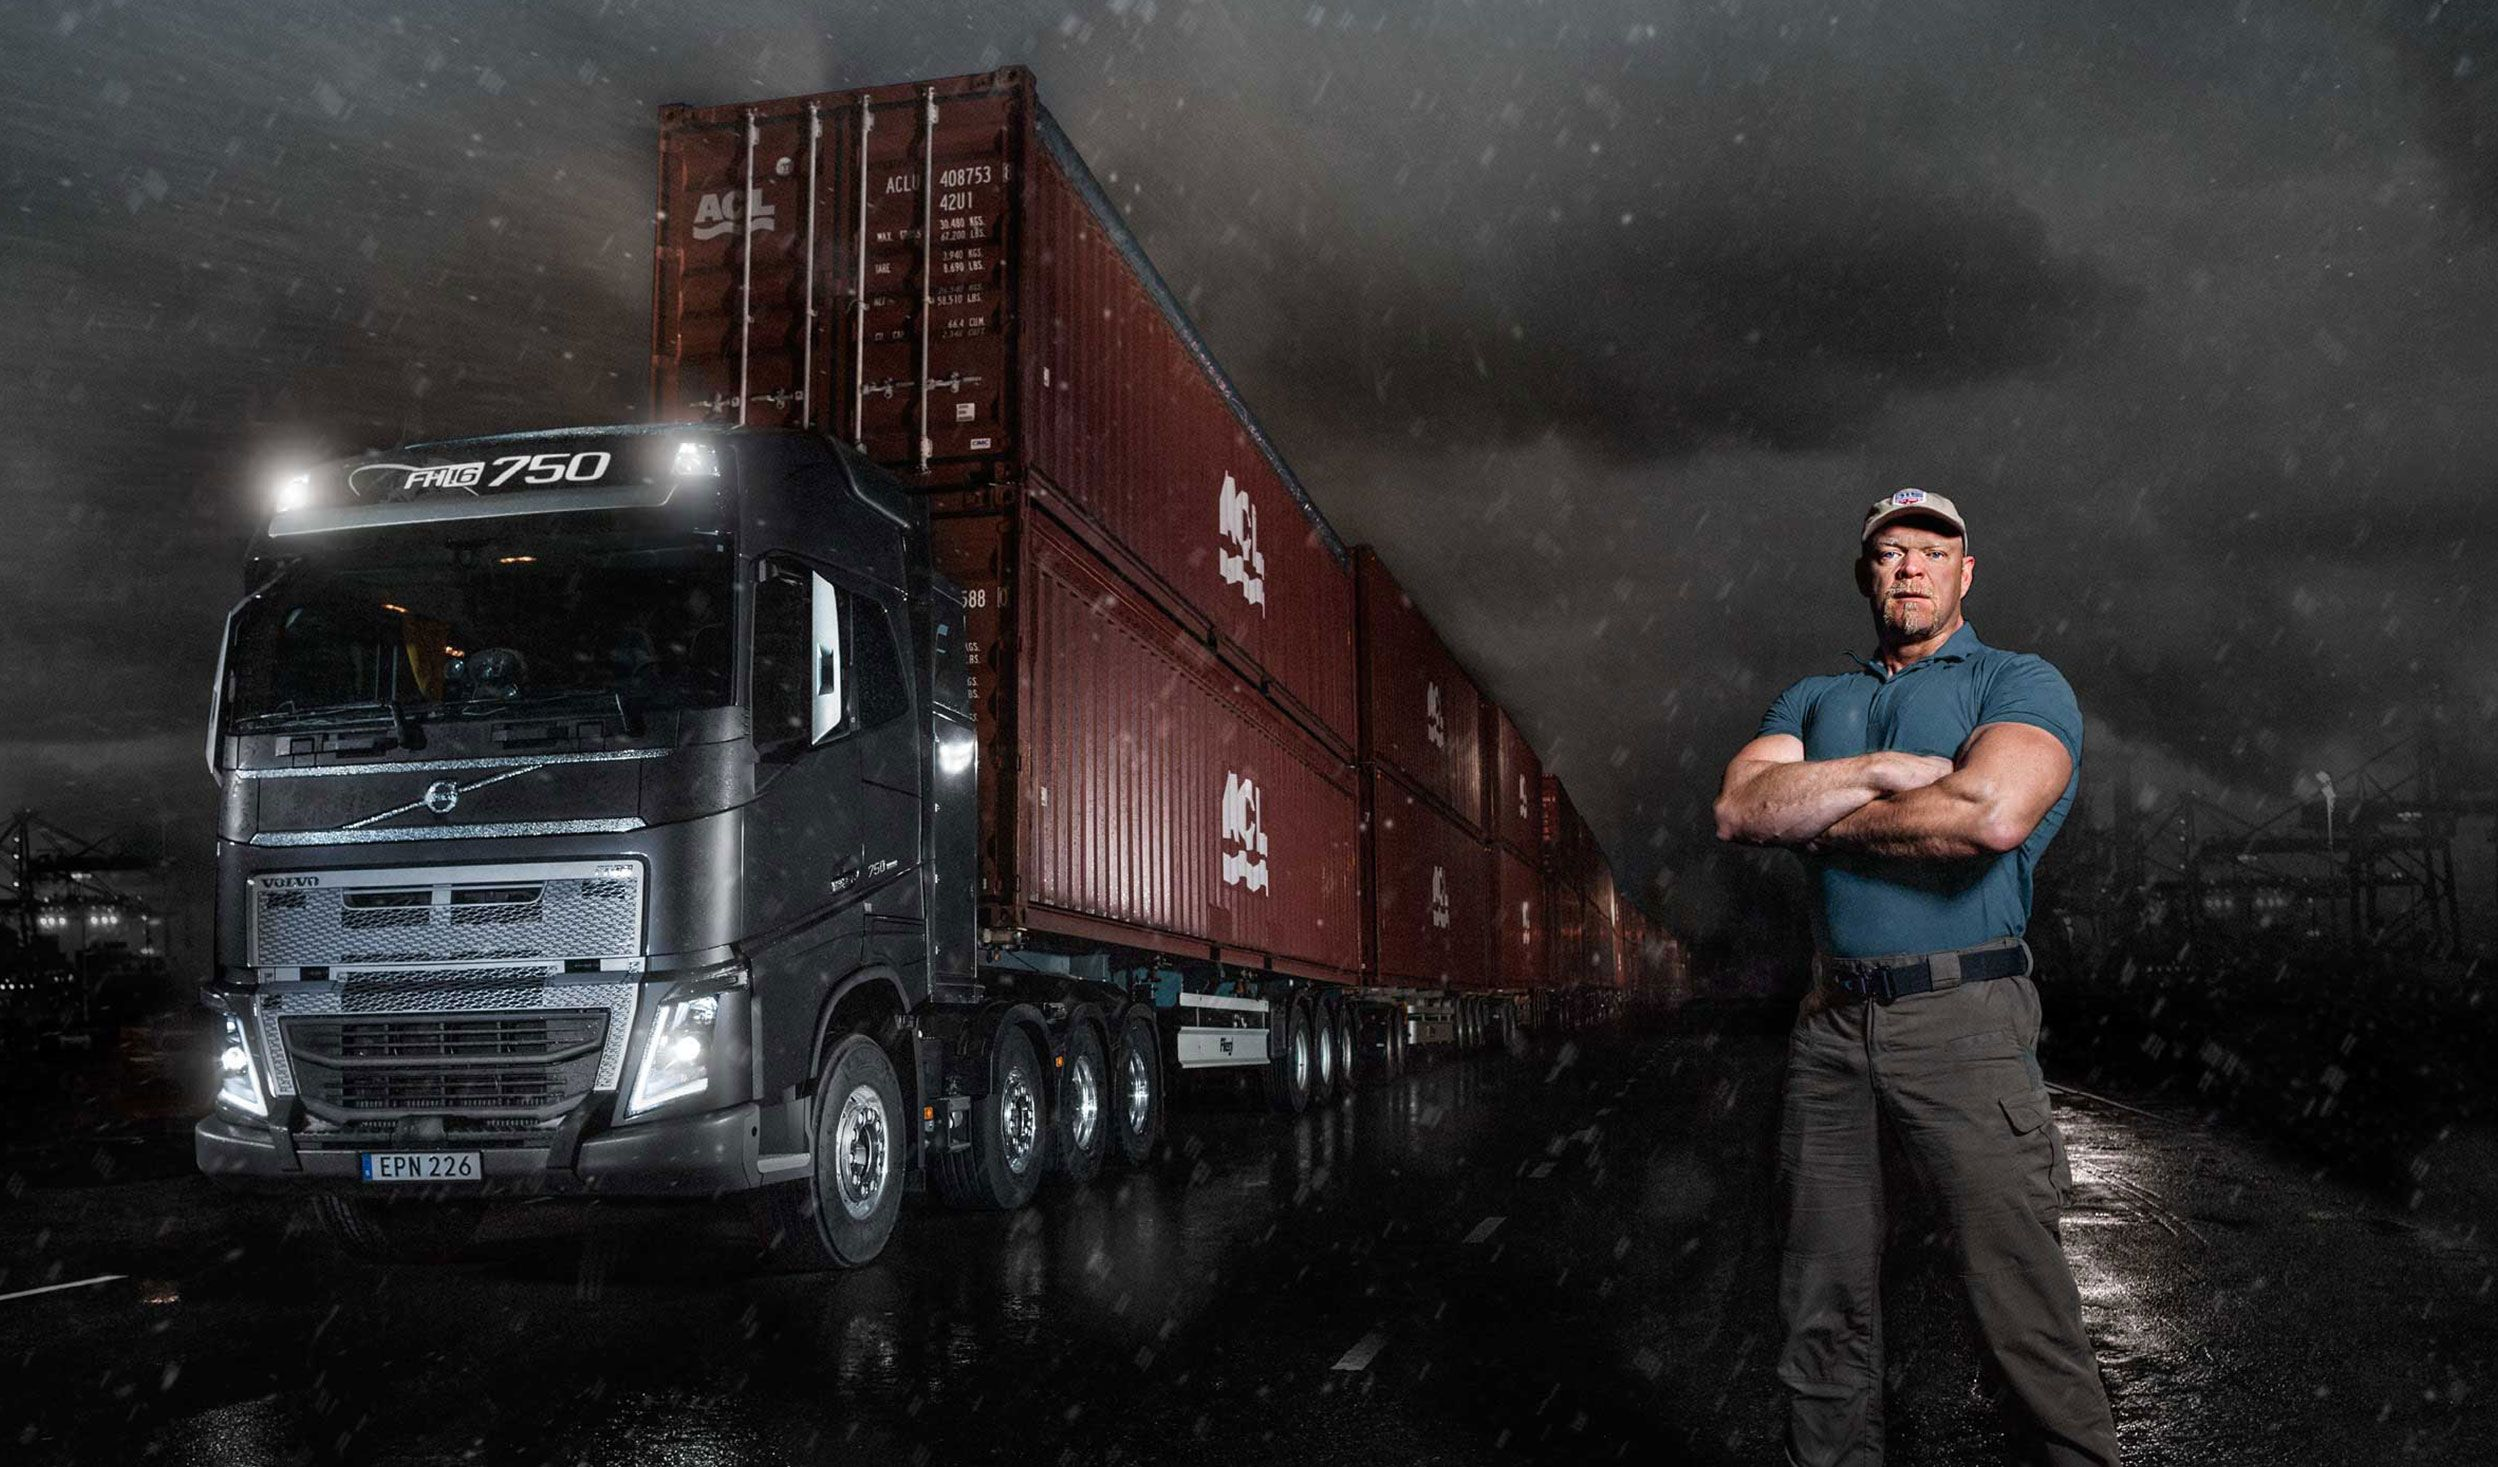 Volvo FH16 and I-Shift with crawler gears pull 750 tonnes